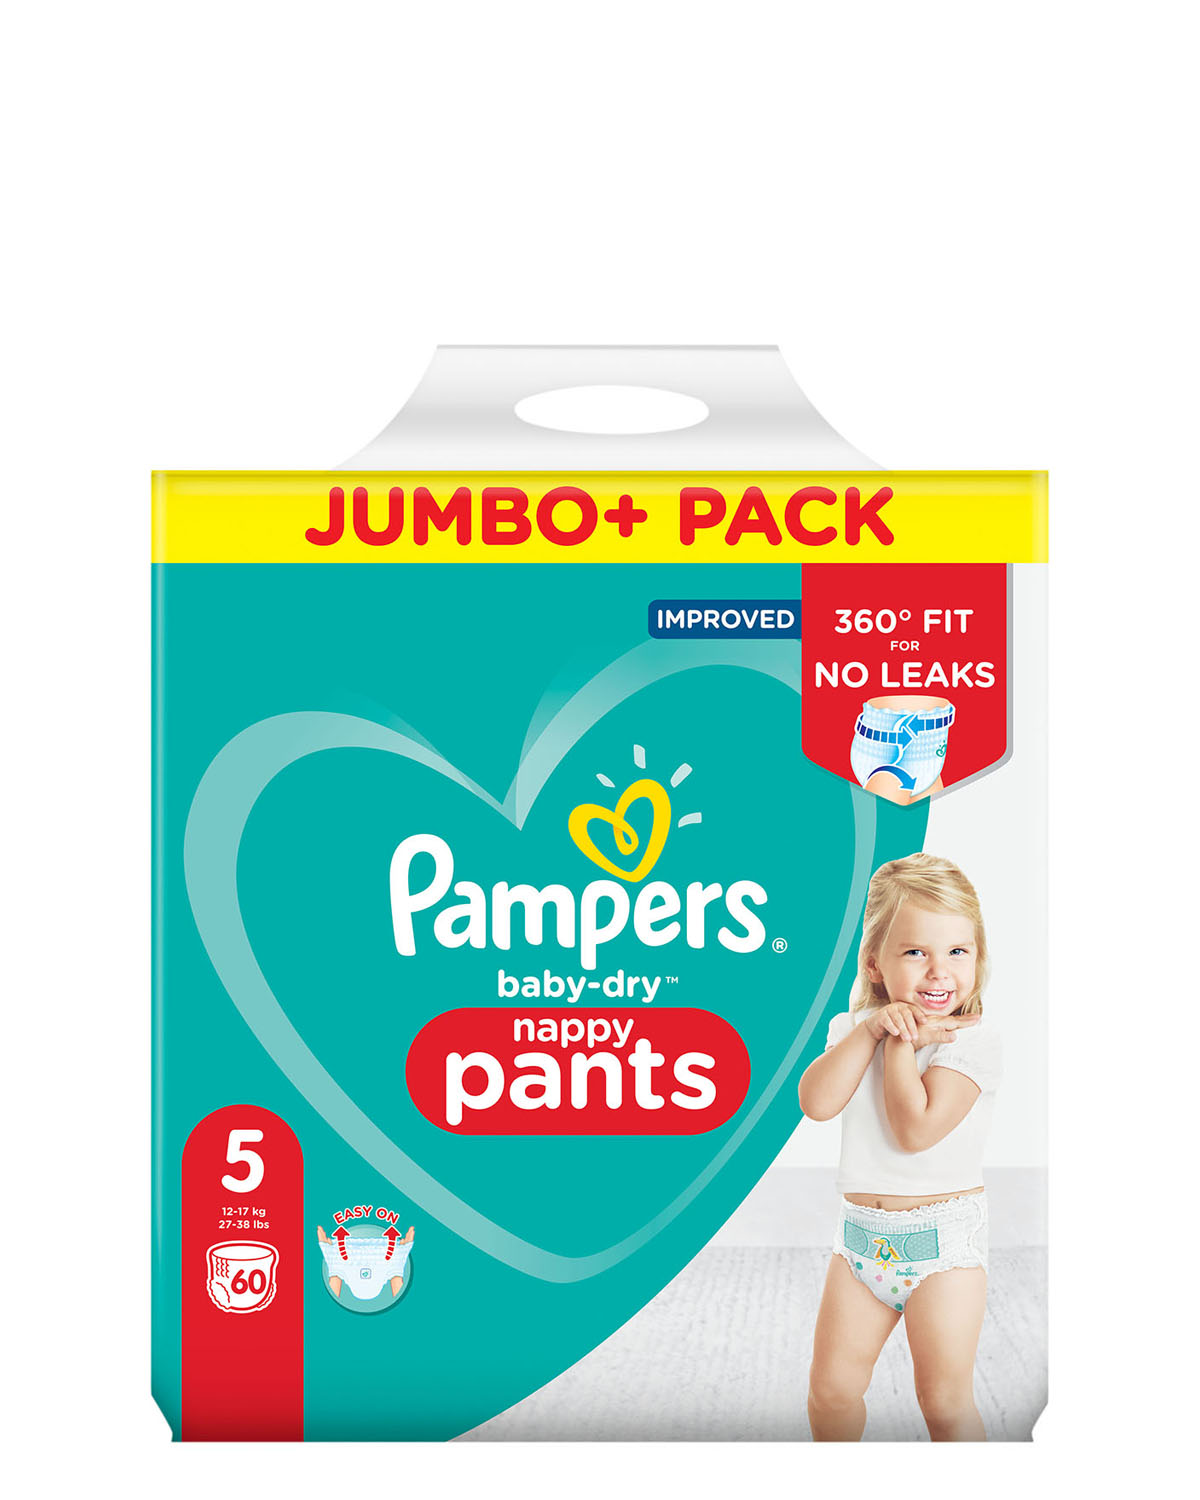 Pampers Baby Dry Pants Size: 5 Jumbo Pack - 60 Nappies thumbnail